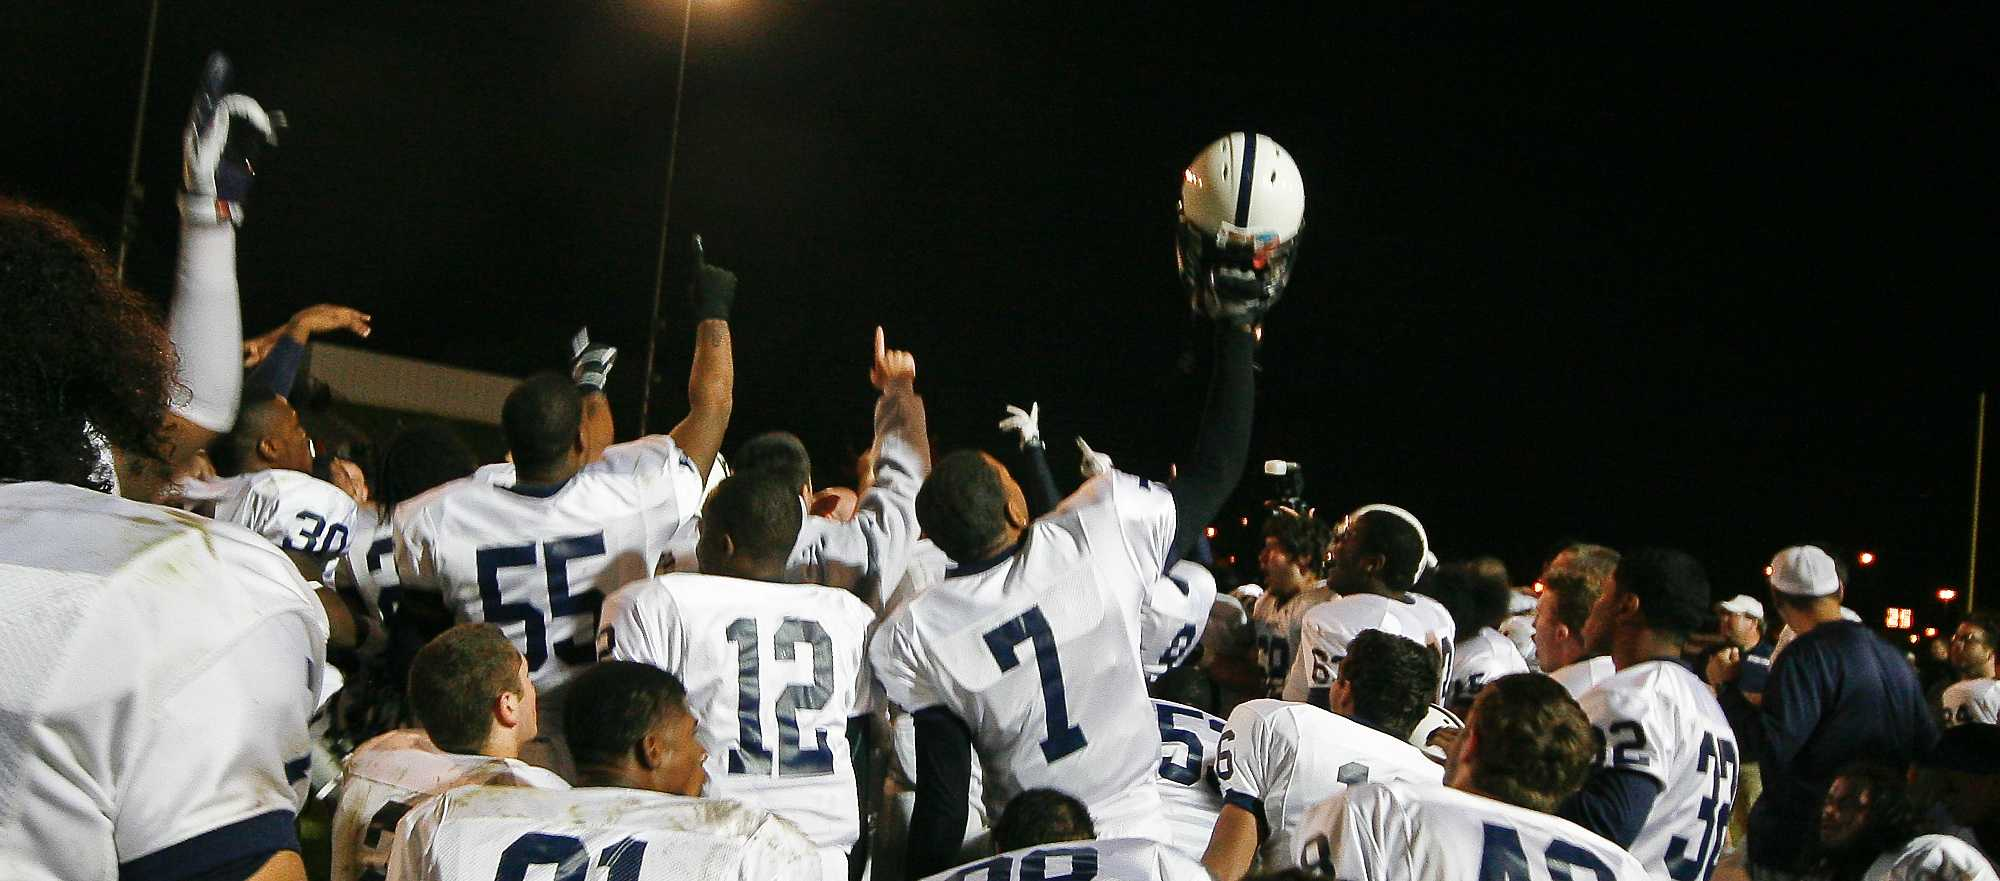 The American River College football team celebrates following a 41-18 win over Chabot College in the Capital City Bowl on Saturday, Nov. 22 at Beaver Stadium. The Beavers finished the season 11-0 -- the first undefeated season in school history. (Photo by Bryce Fraser)